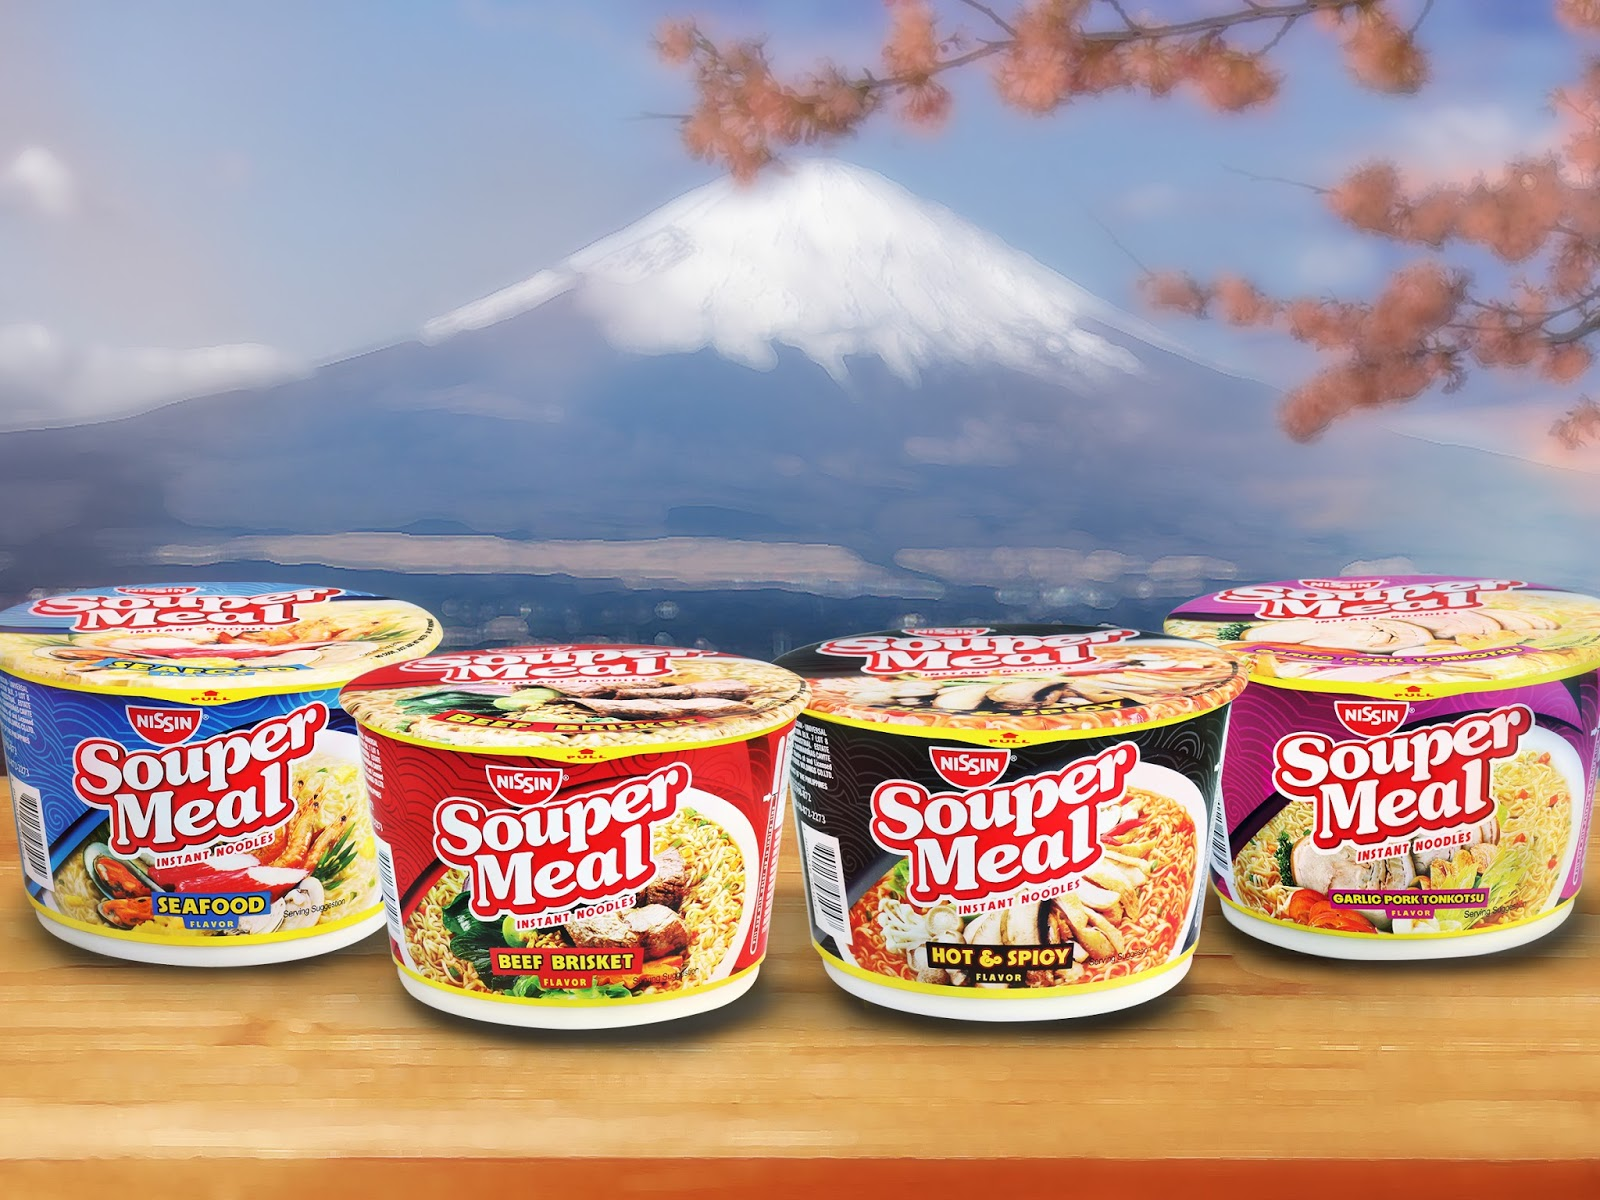 Super The Big Four Cups of Nissin Souper Meal comes in big bowls of  BN14